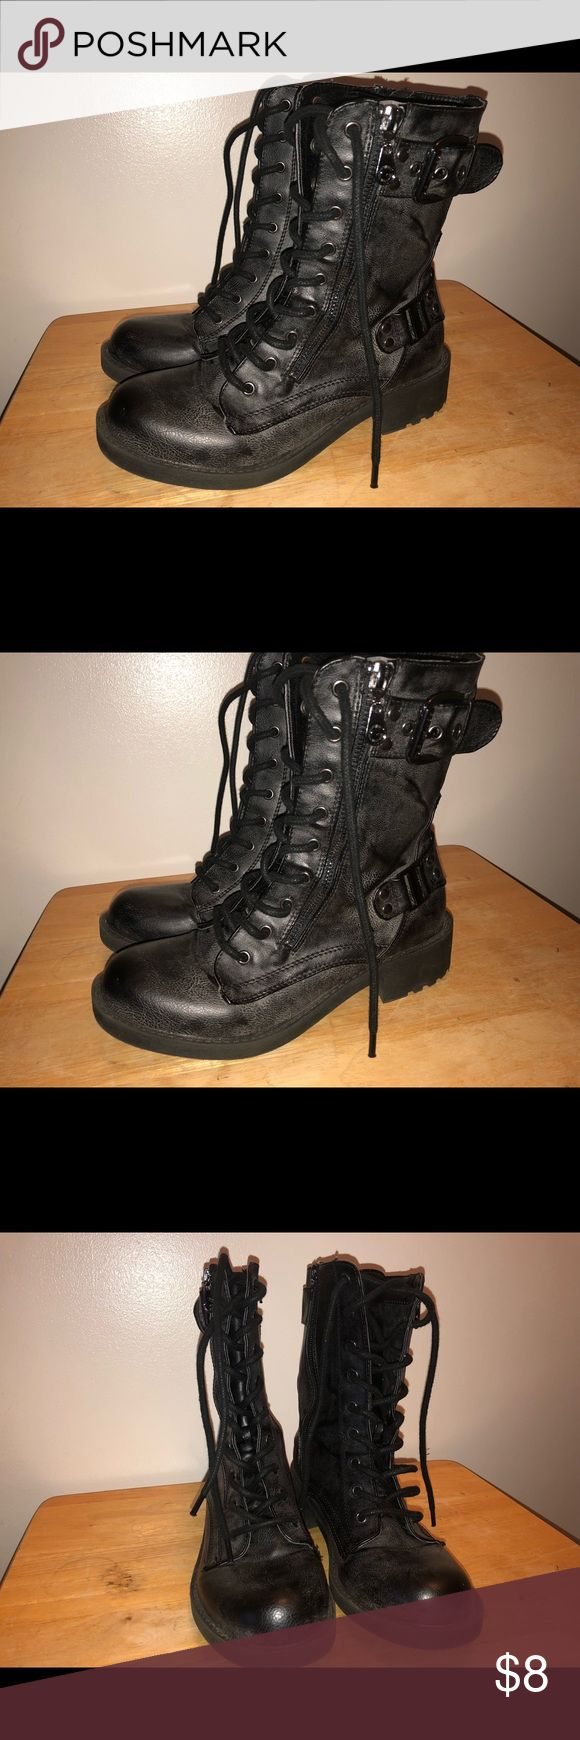 G by Guess Black Biker Boots G by Guess Black Biker Boots. Black with gray overtone. G by Guess Shoes Combat & Moto Boots